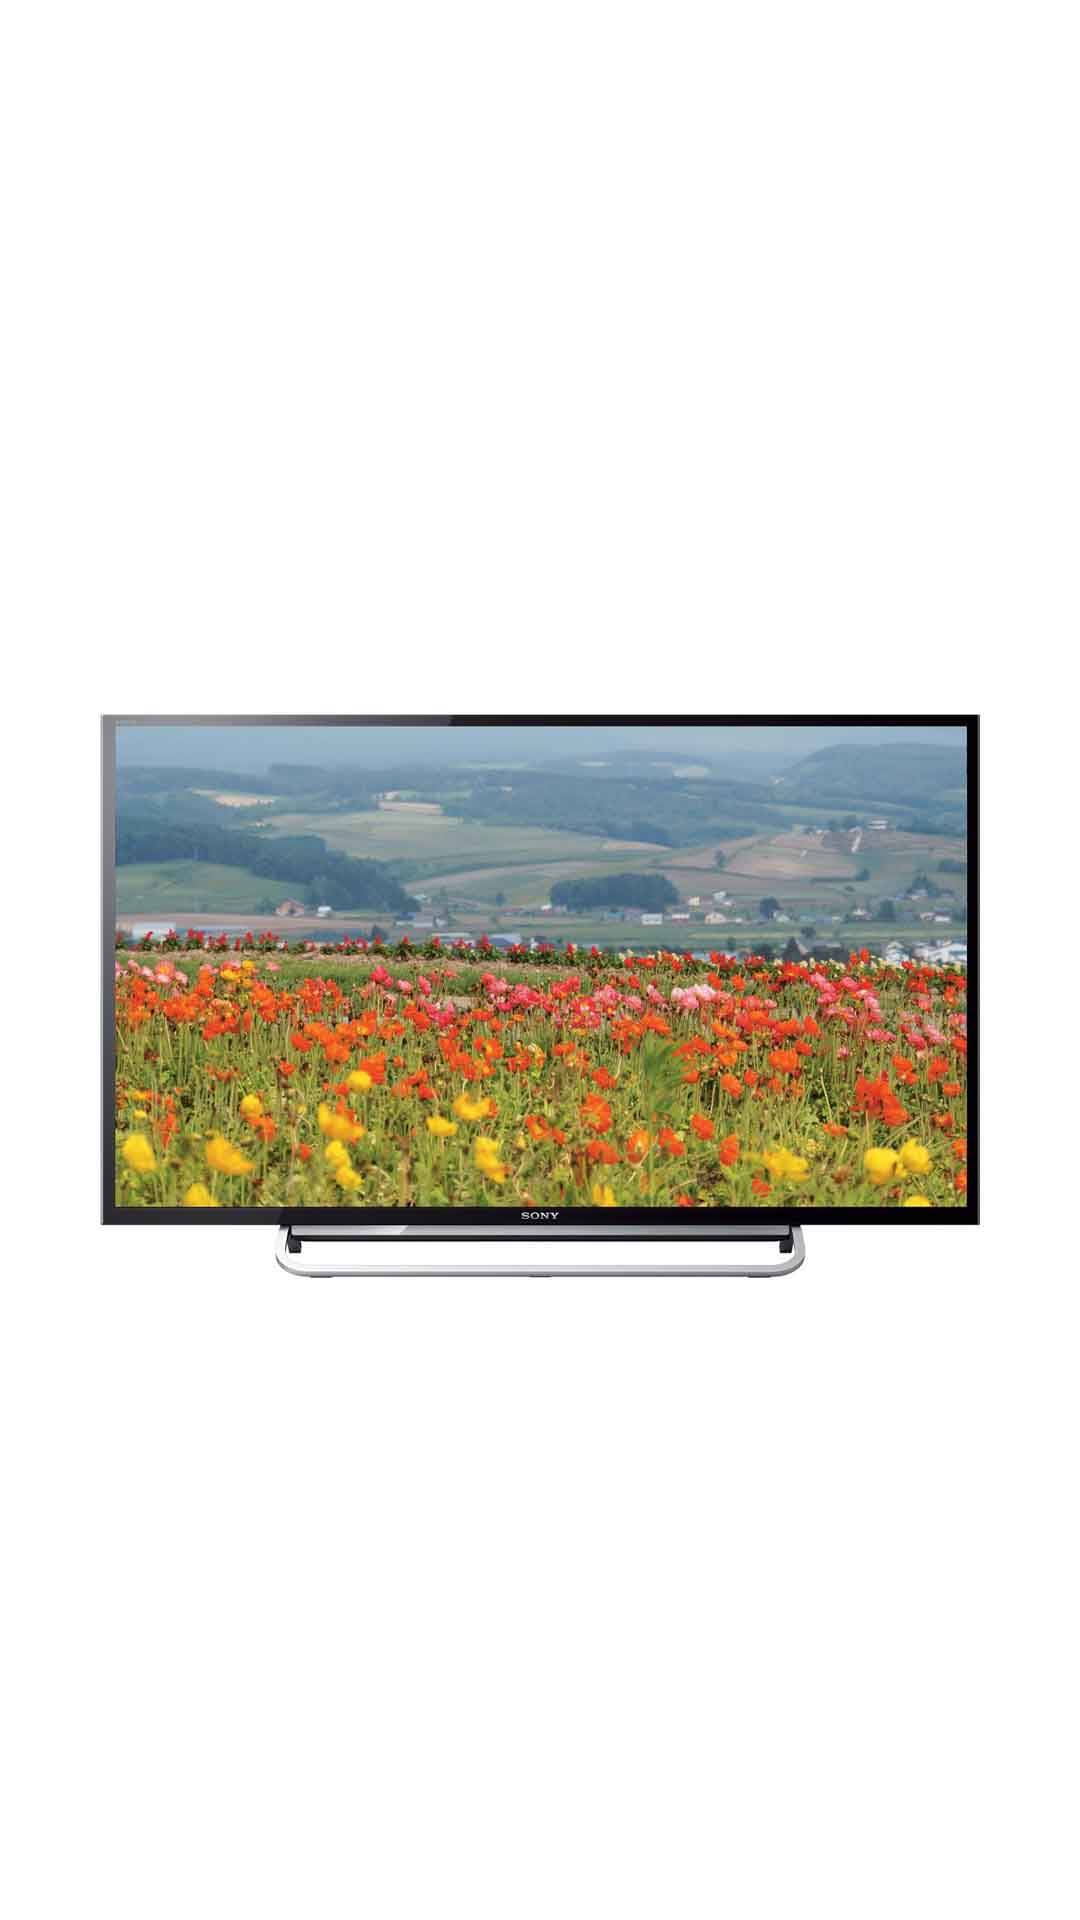 sony bravia klv 40r482b 101 6 cm 40 led tv full hd photos images and wallpapers. Black Bedroom Furniture Sets. Home Design Ideas